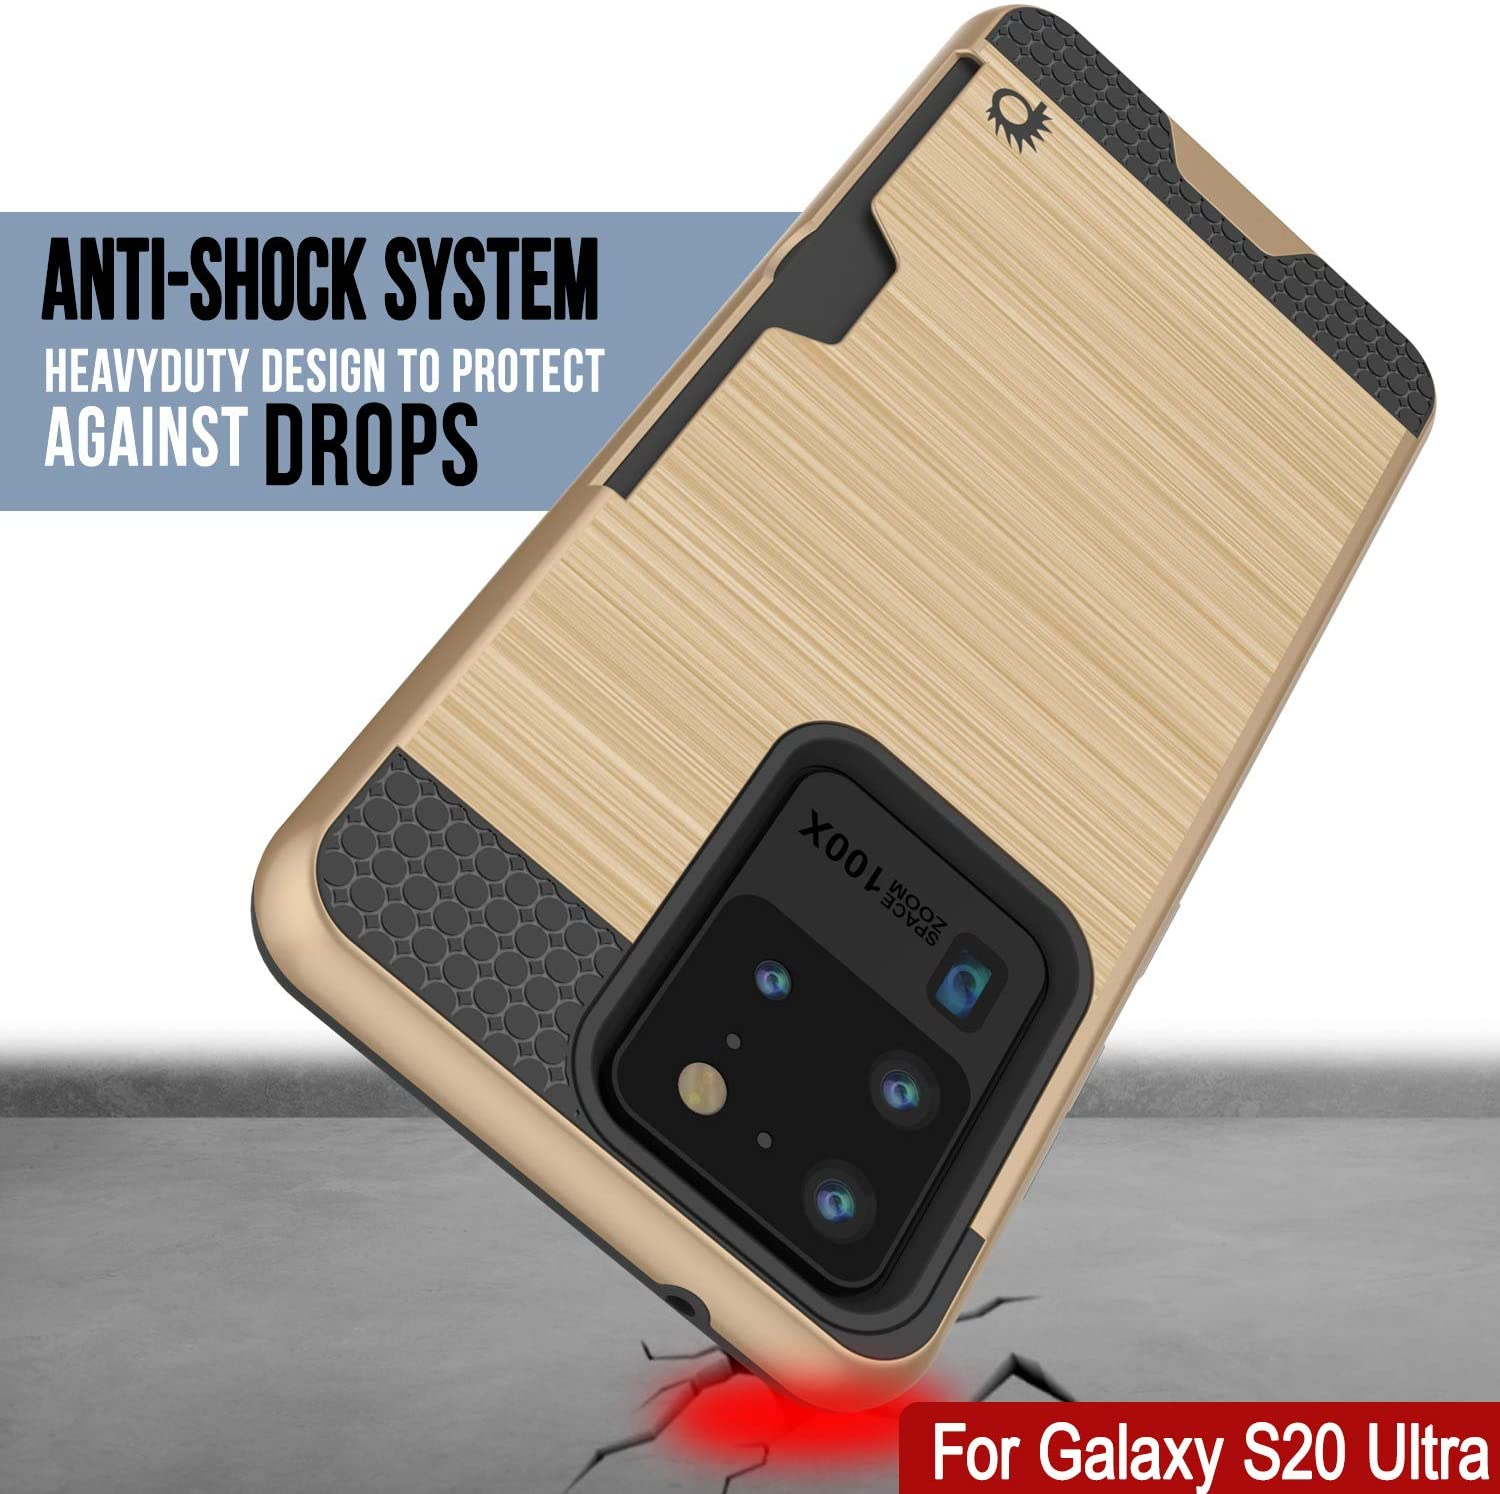 Galaxy S20 Ultra Case, PUNKcase [SLOT Series] [Slim Fit] Dual-Layer Armor Cover w/Integrated Anti-Shock System, Credit Card Slot [Gold]